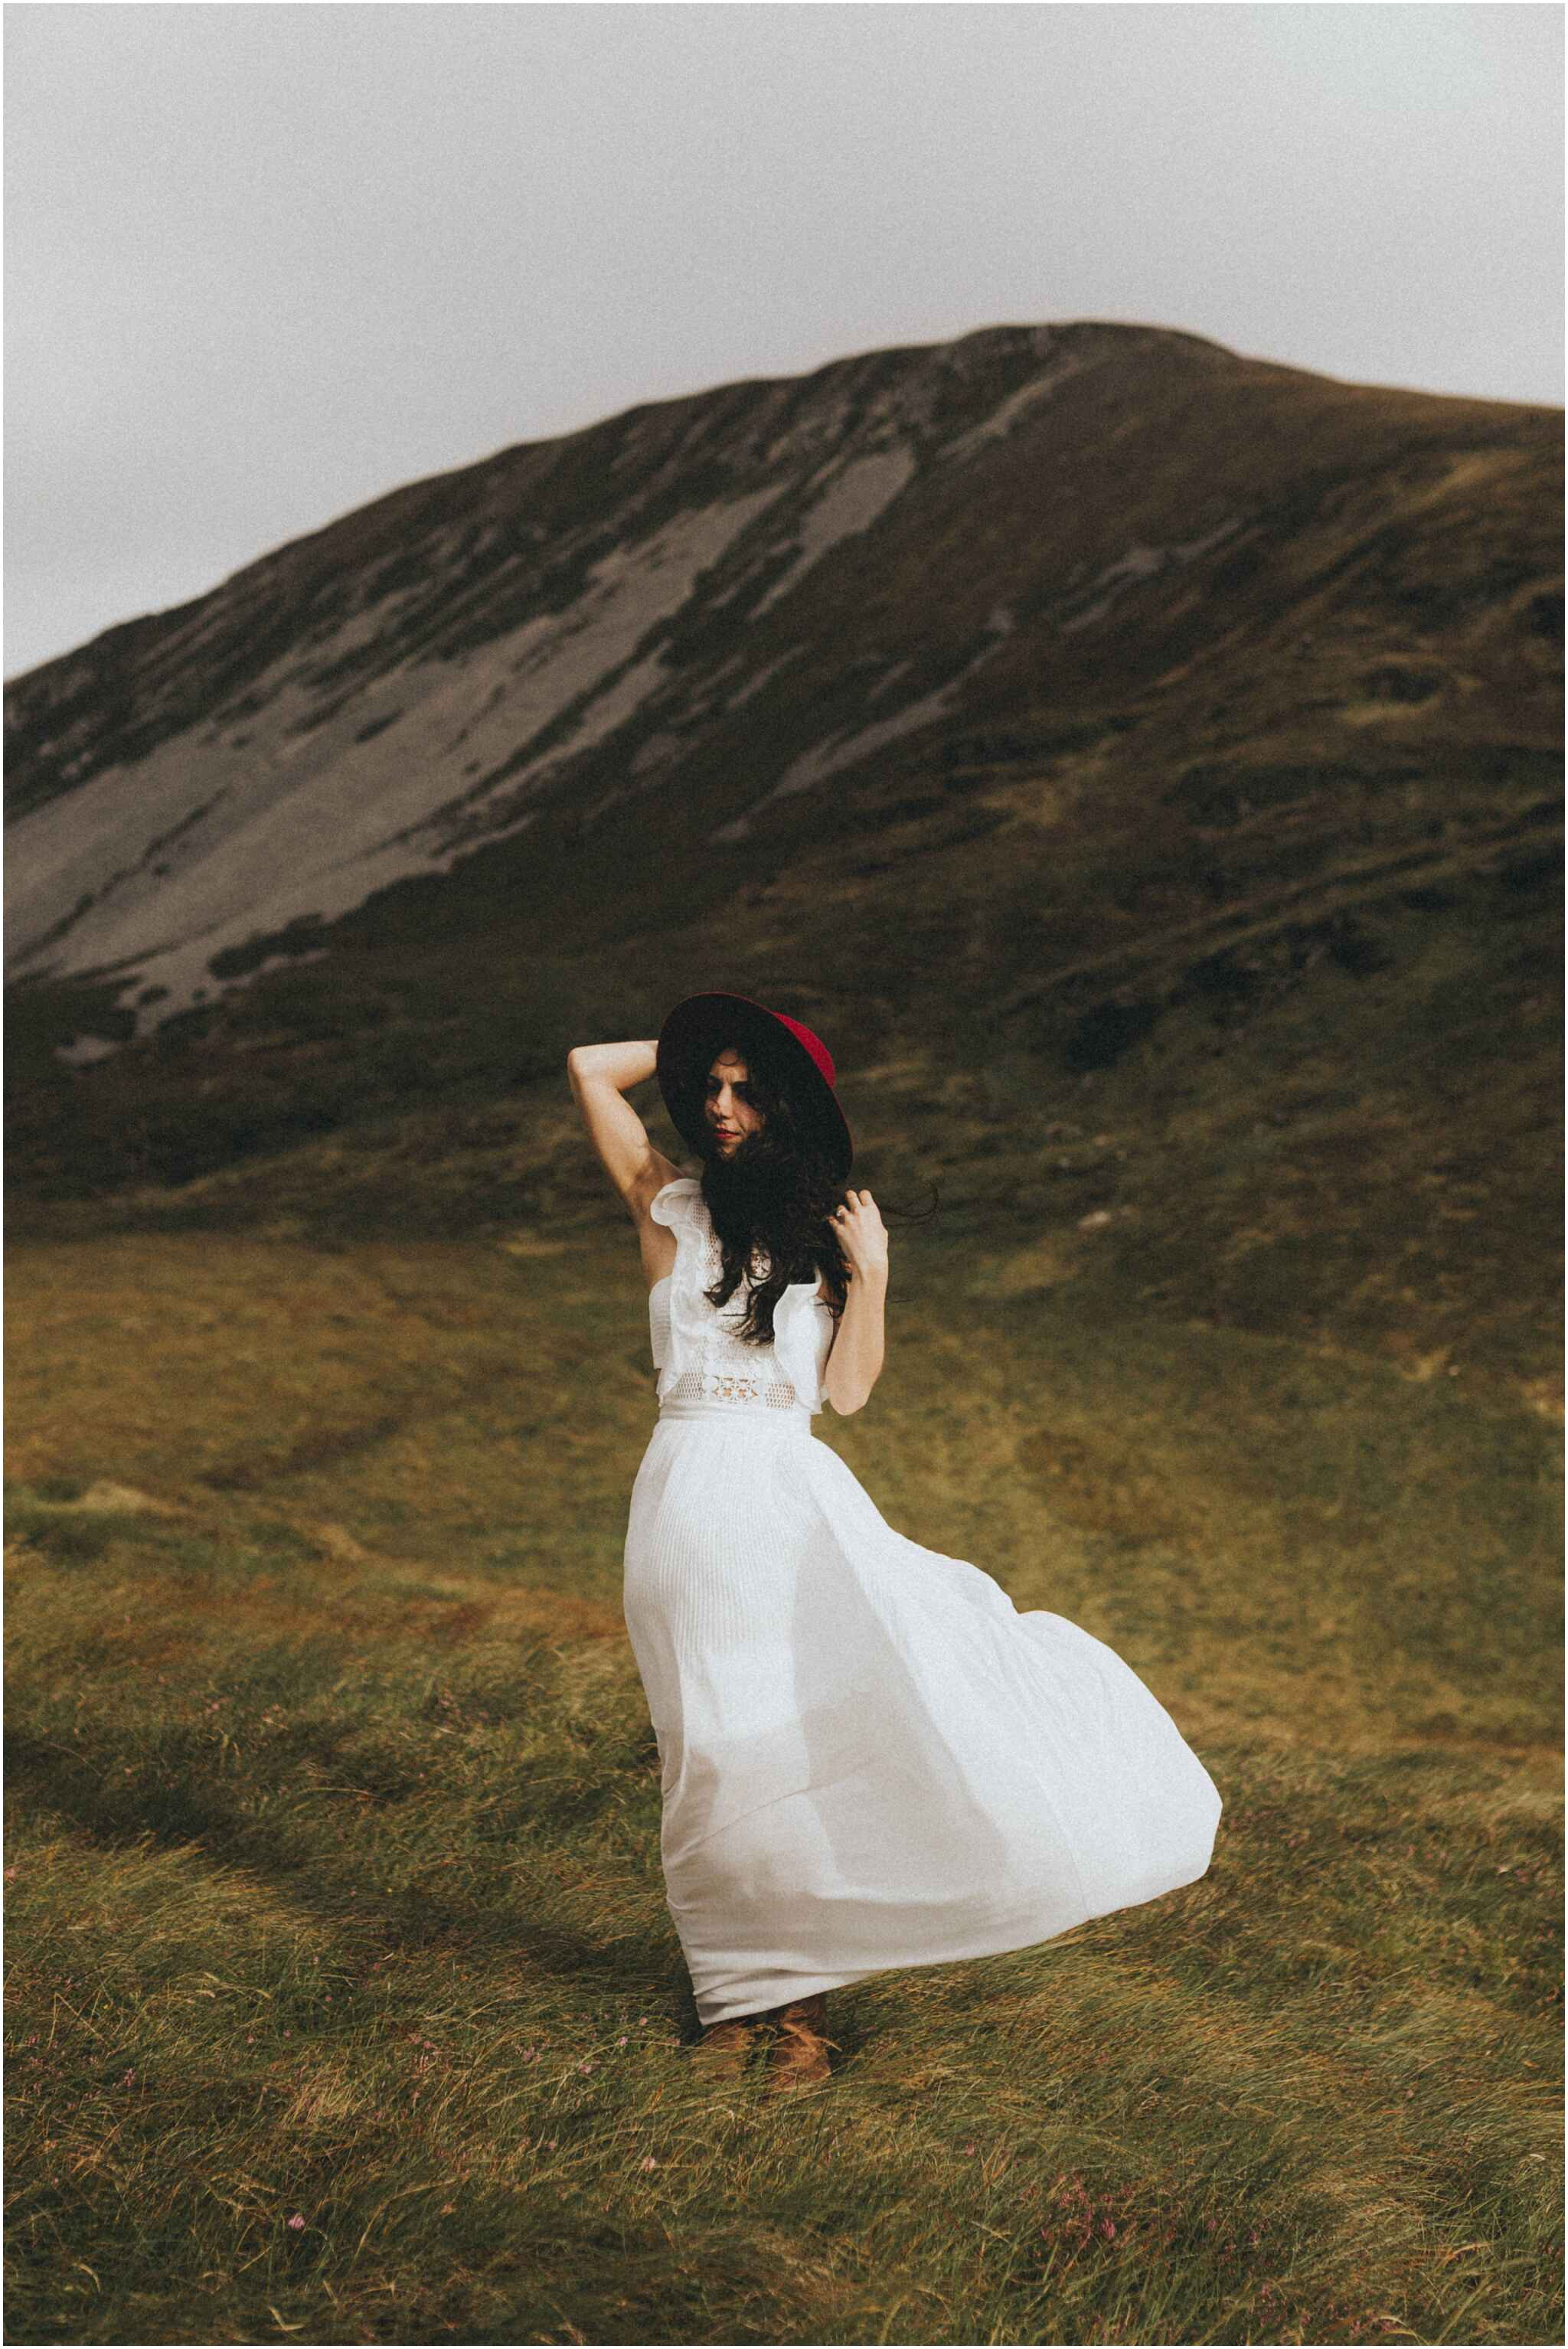 Rachel + David - Hiking Elopement in Muckish Mountain and Poisoned Glen, Donegal 15